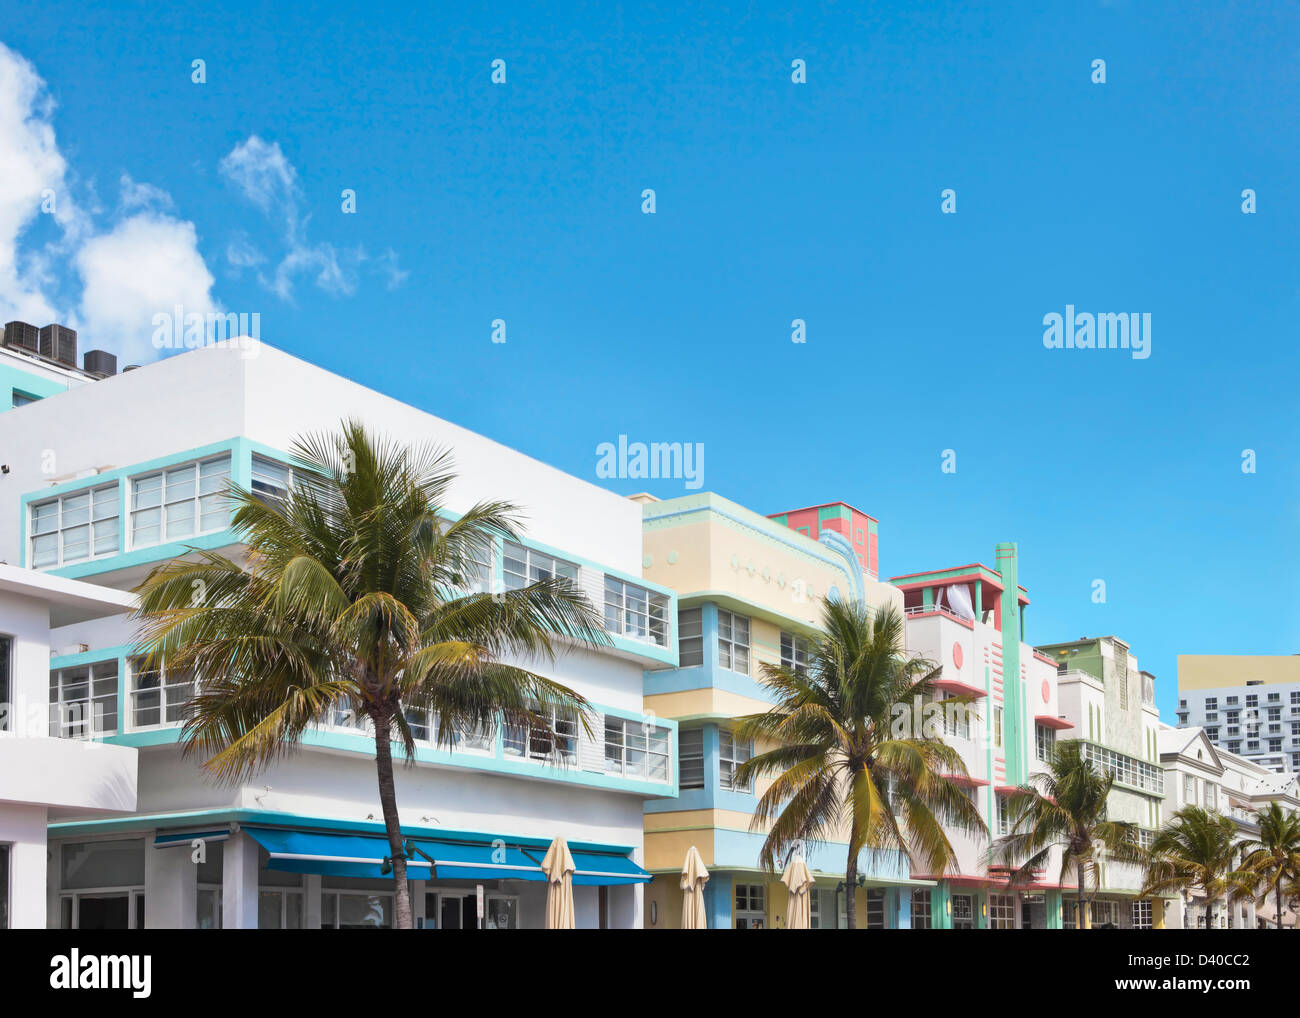 A Row Of Buildings In Art Deco Style Lining Ocean Drive S Art Deco Stock Photo Alamy